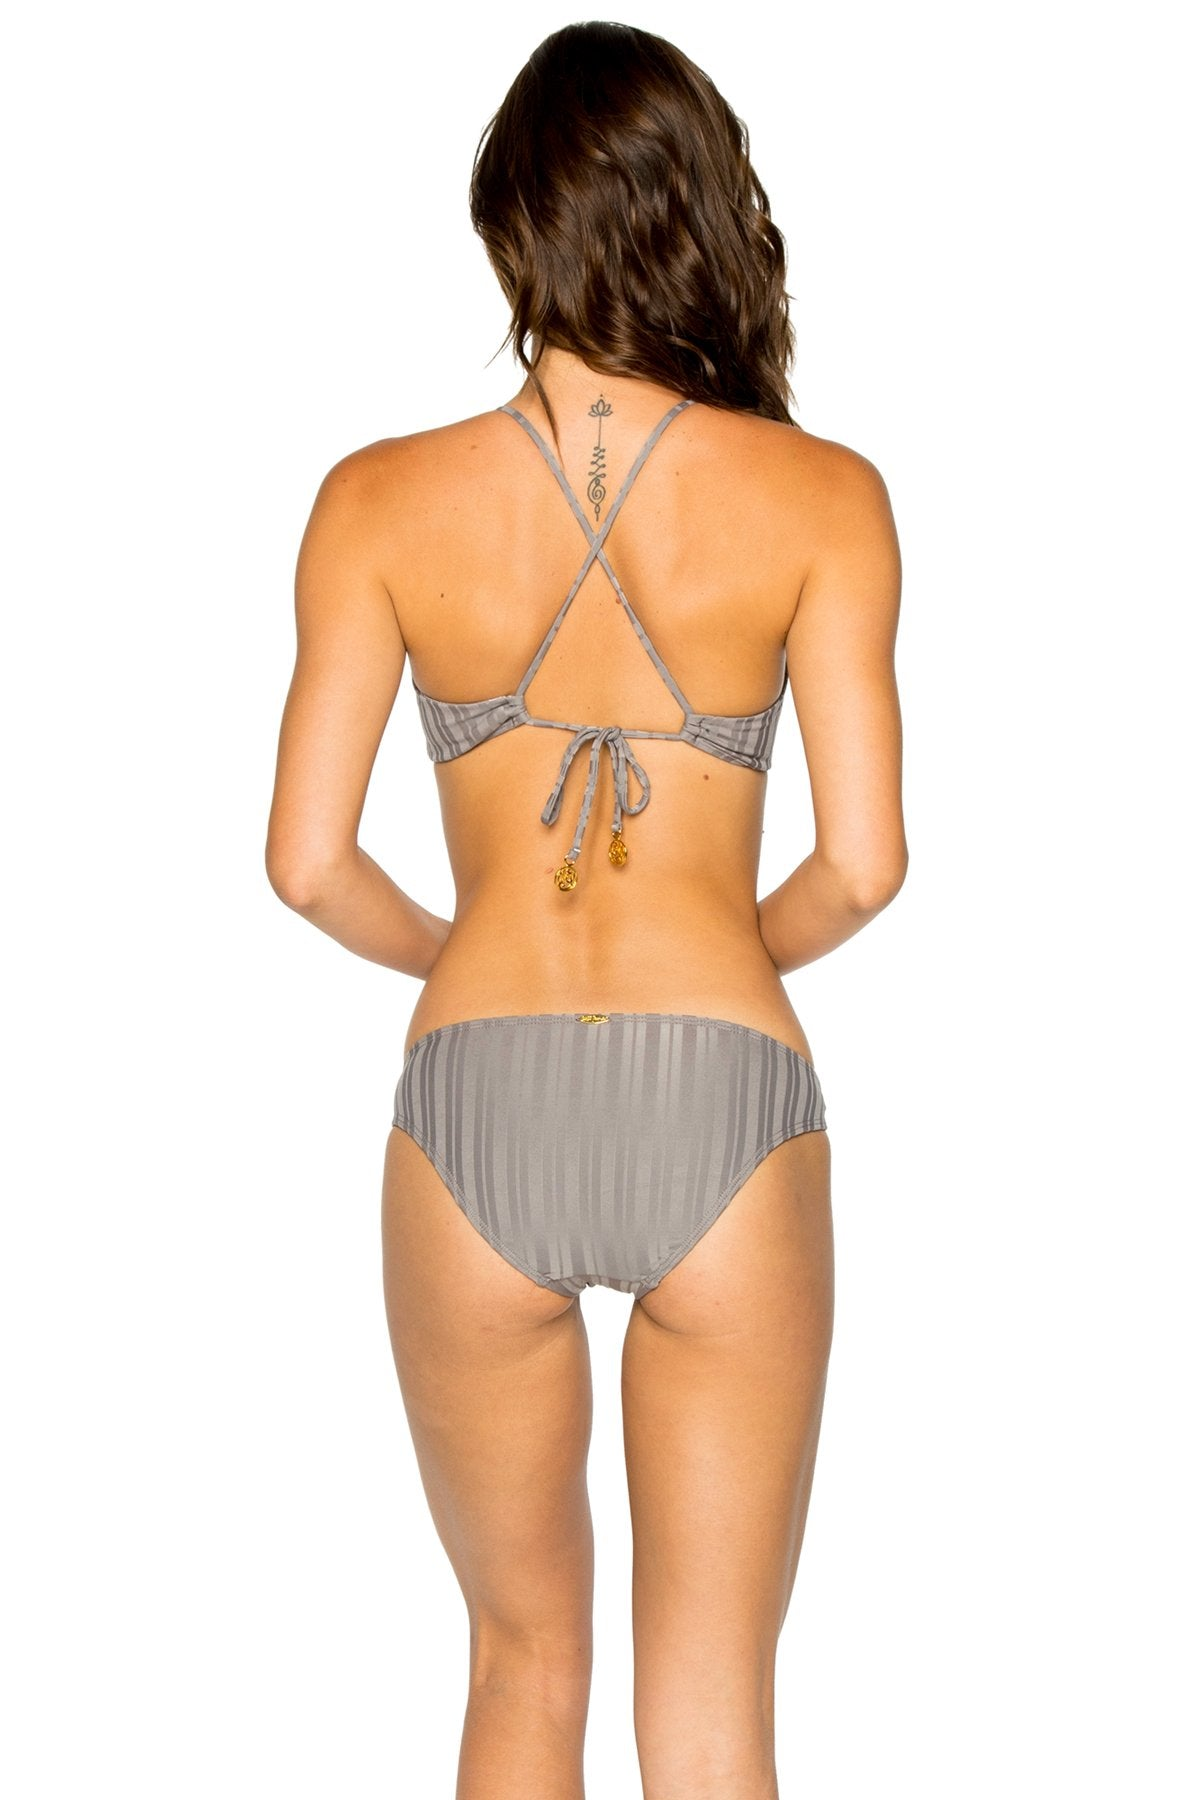 TURI TURAI - Bralette Top & Full Bottom • Grey